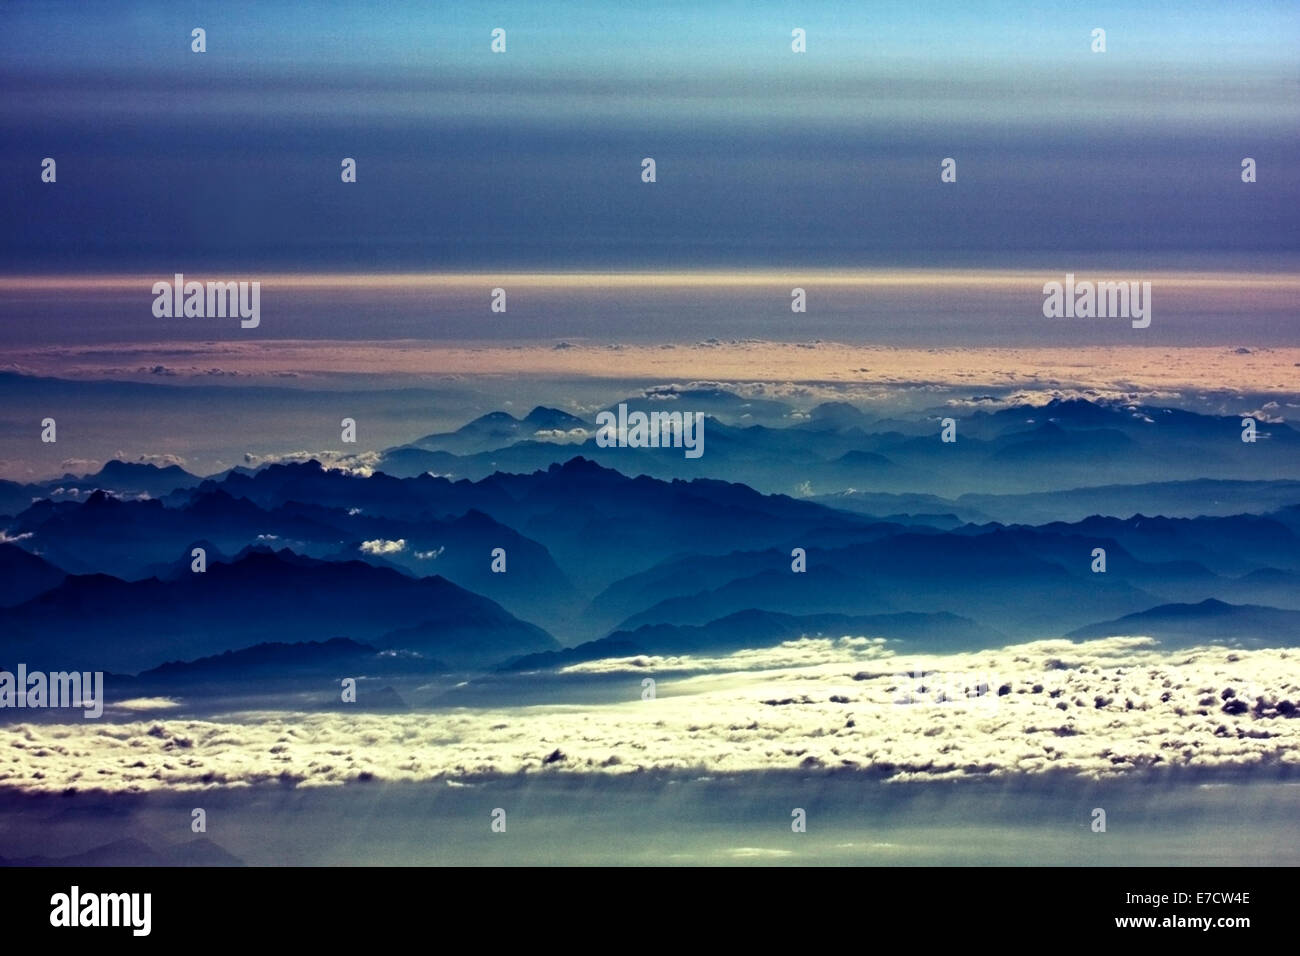 Tranquil view of Alps, Austria - Stock Image